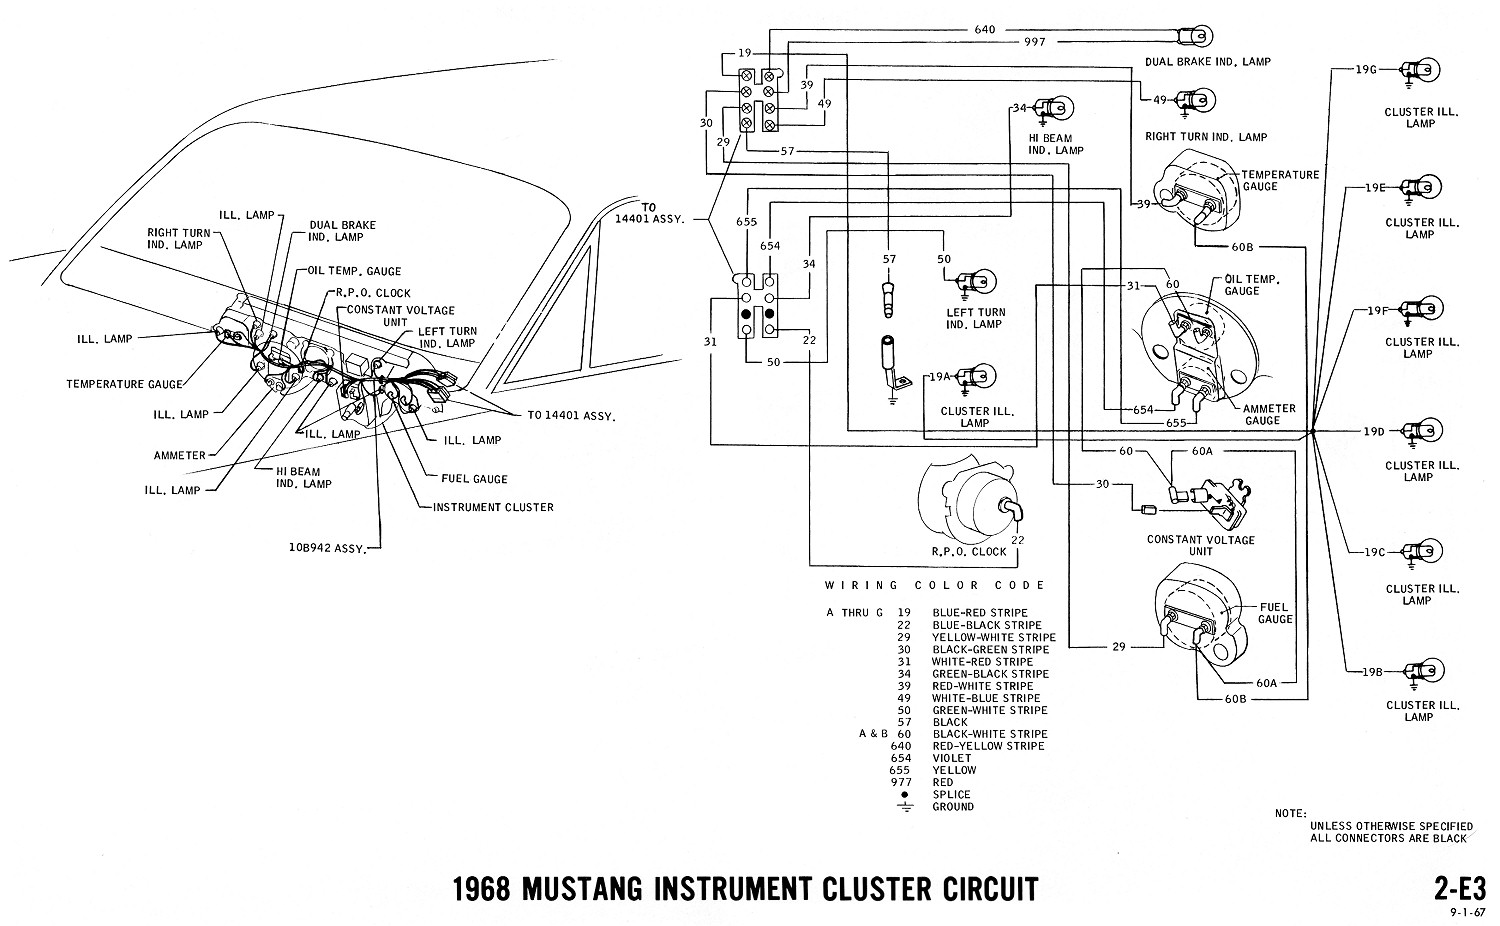 1968 mustang wiring diagrams evolving software instrument cluster clock gauges sciox Images